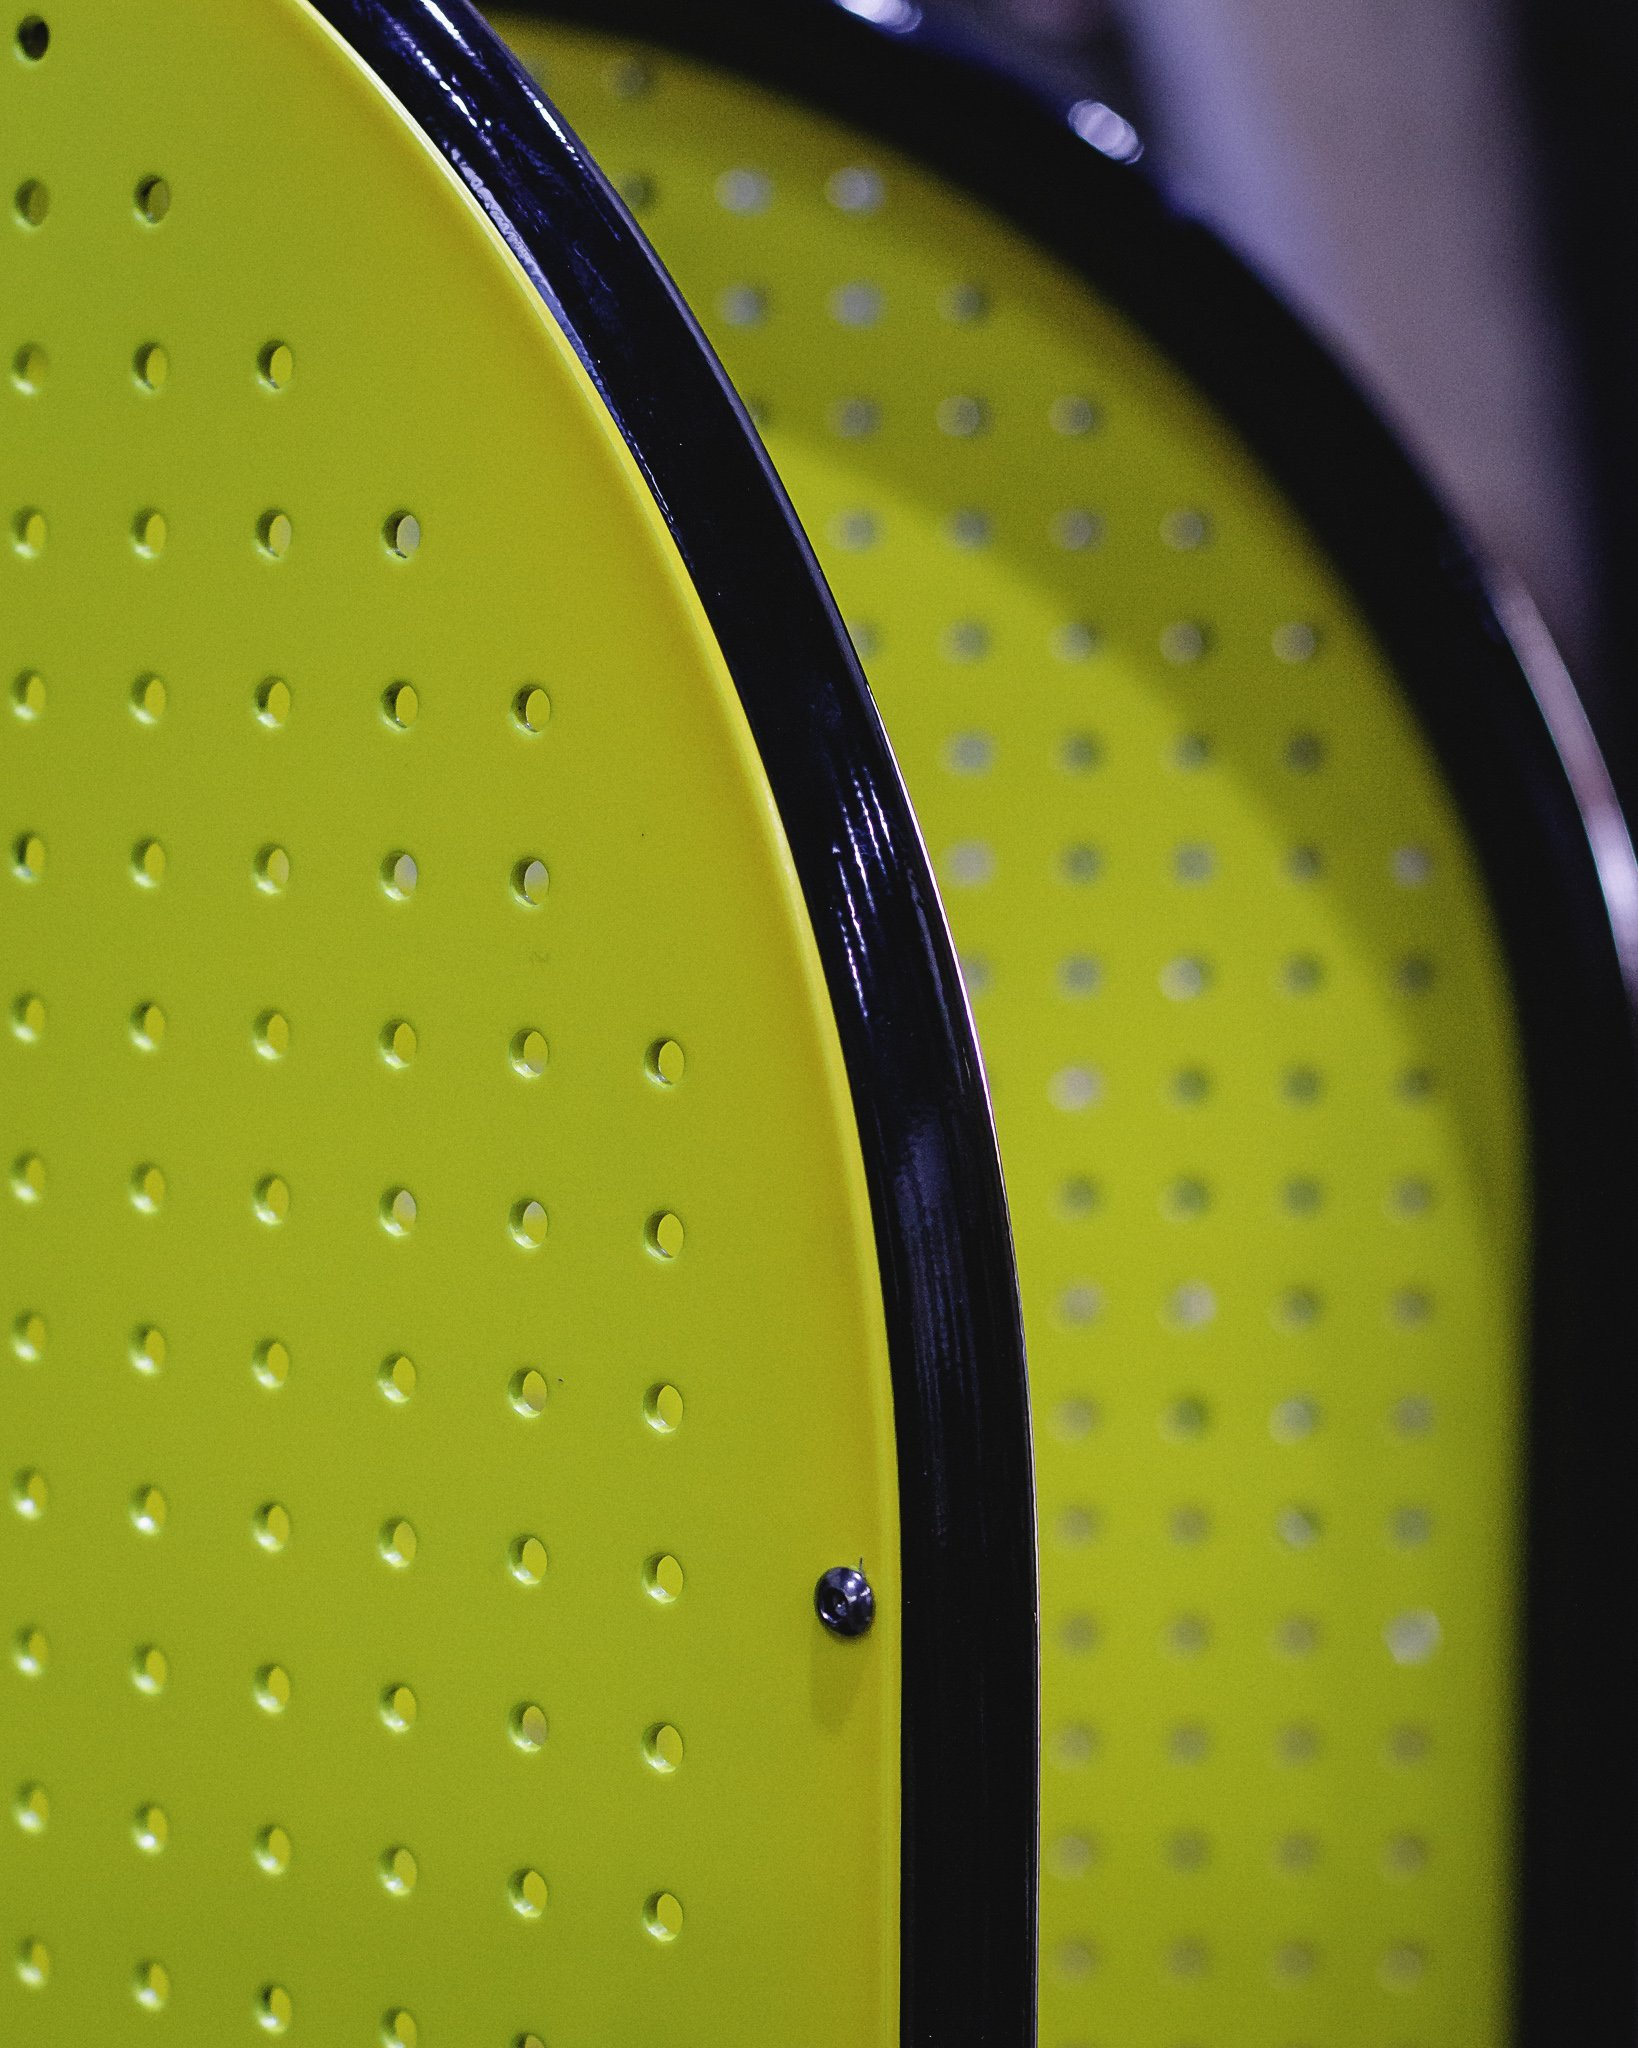 illumines florescent yellow luggage trolleys with a black piping round the edge